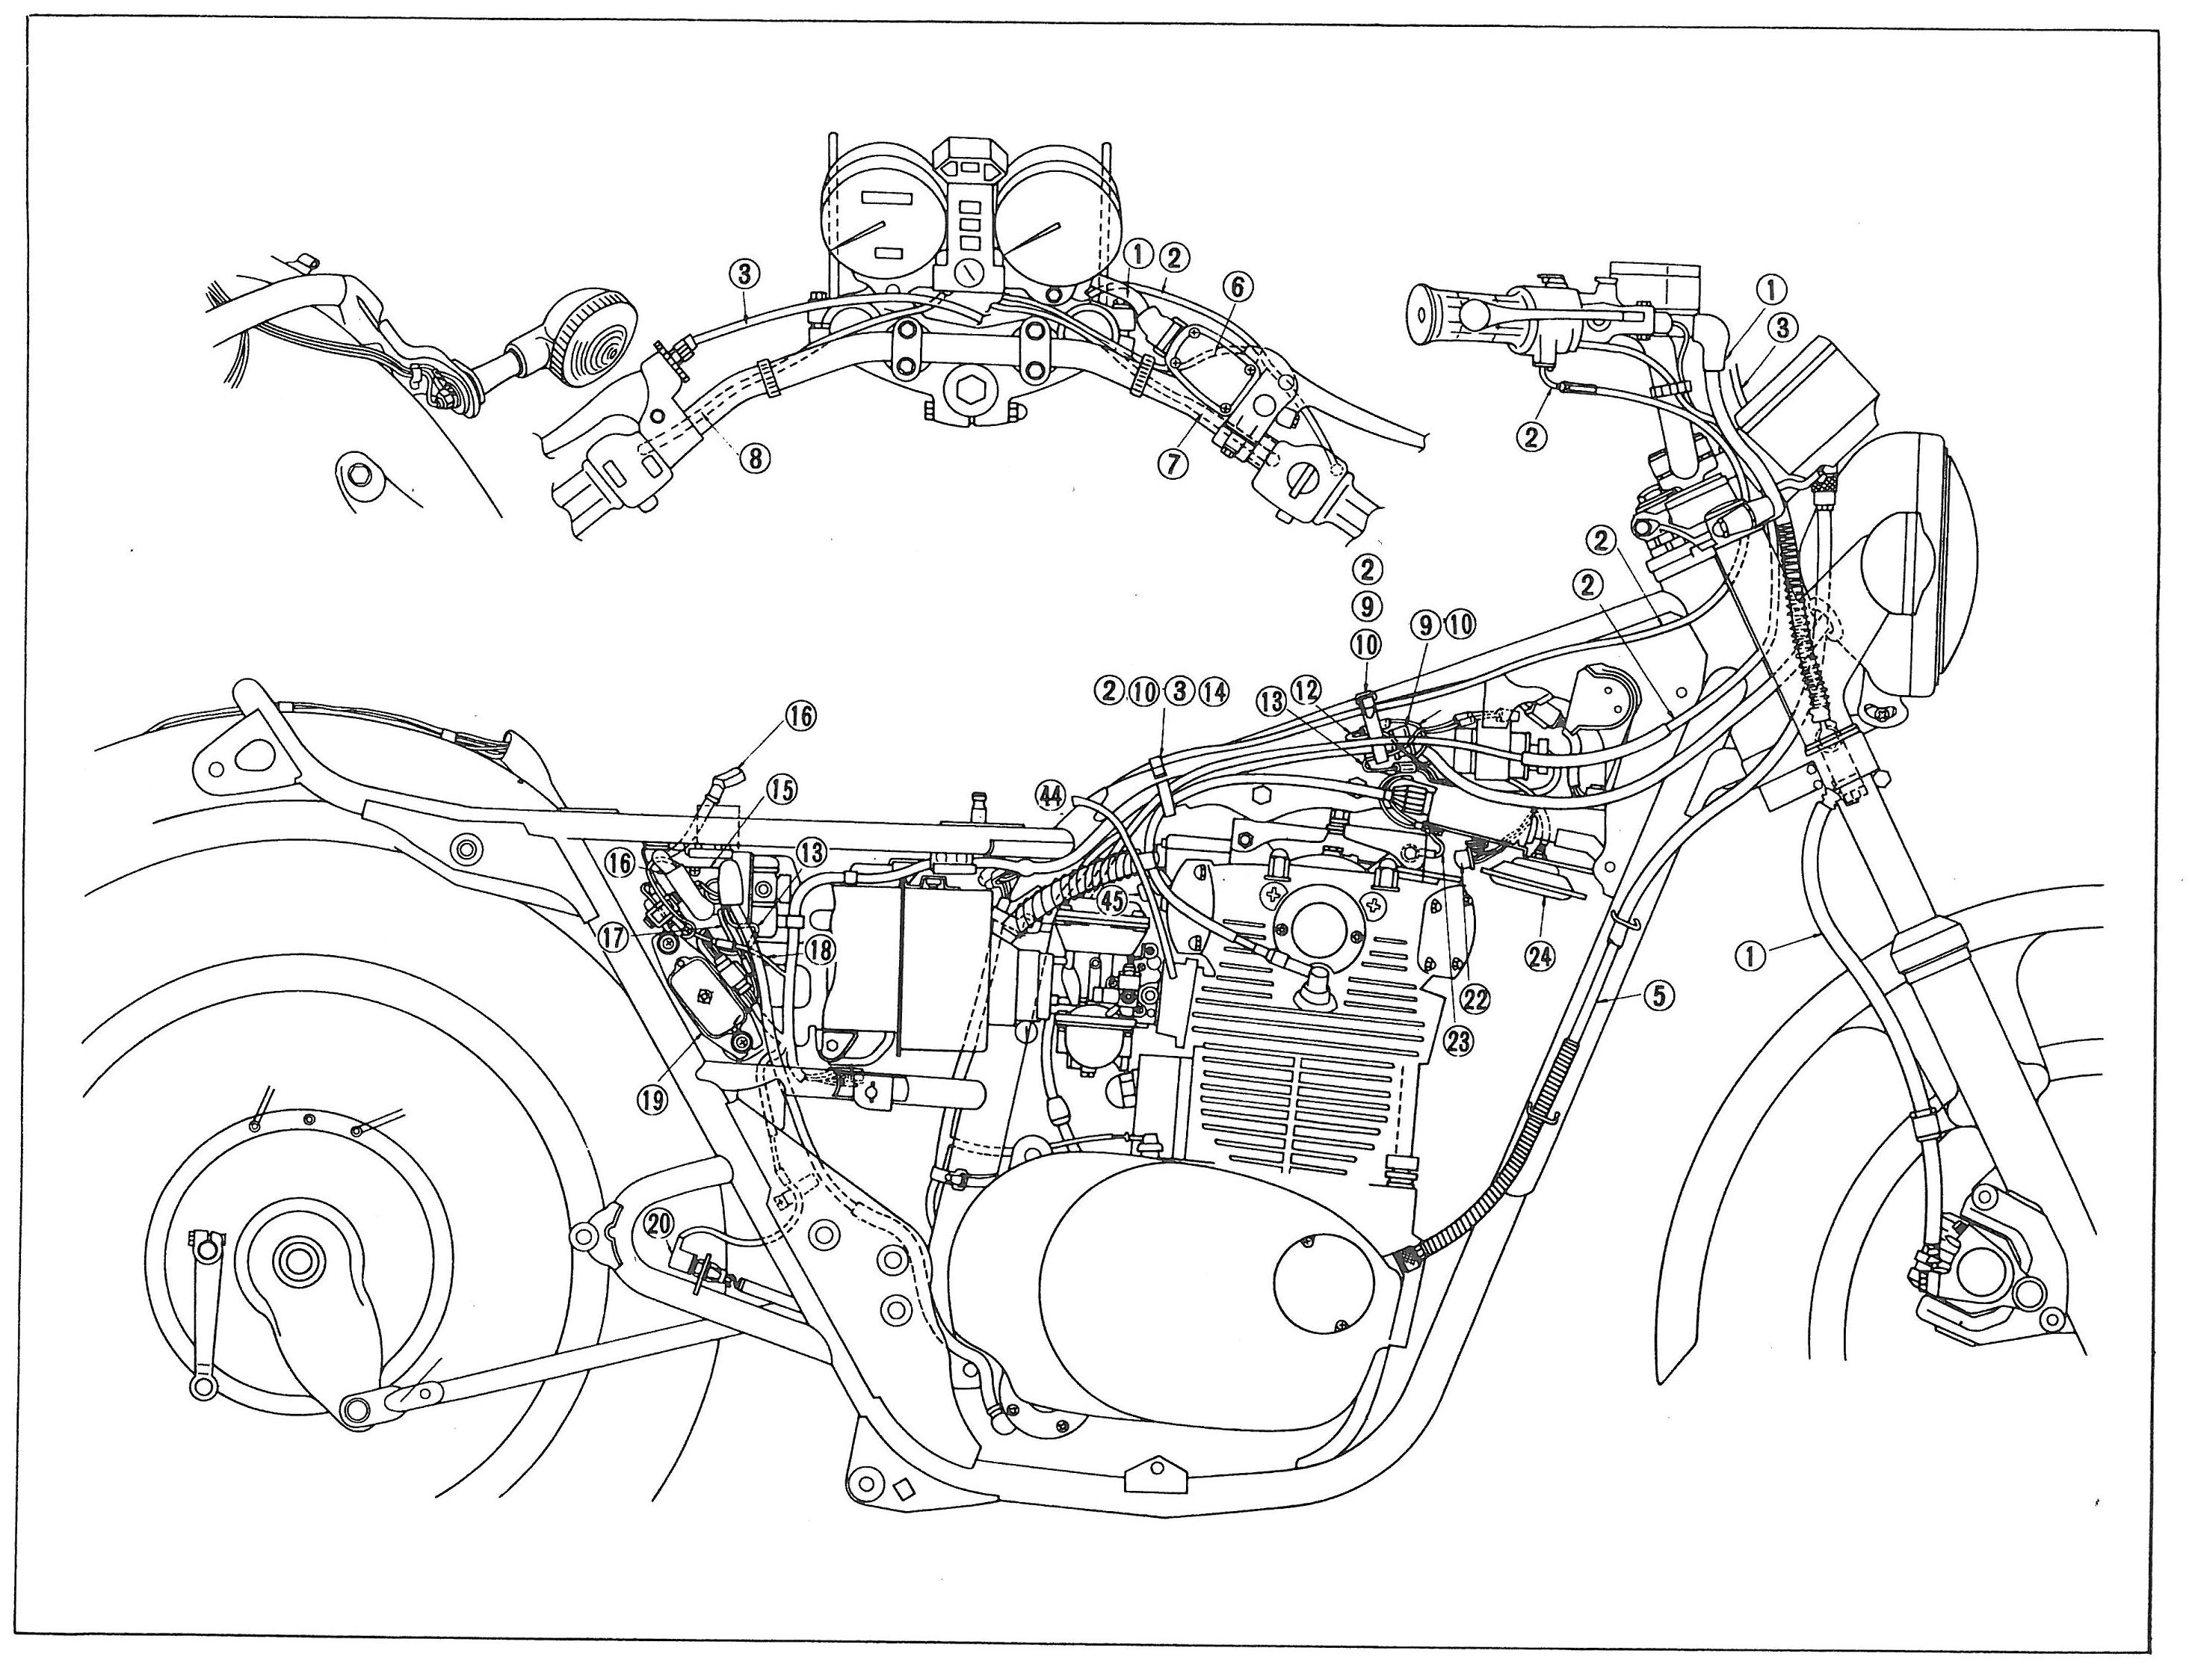 77 xs650 wiring diagram  77  free engine image for user